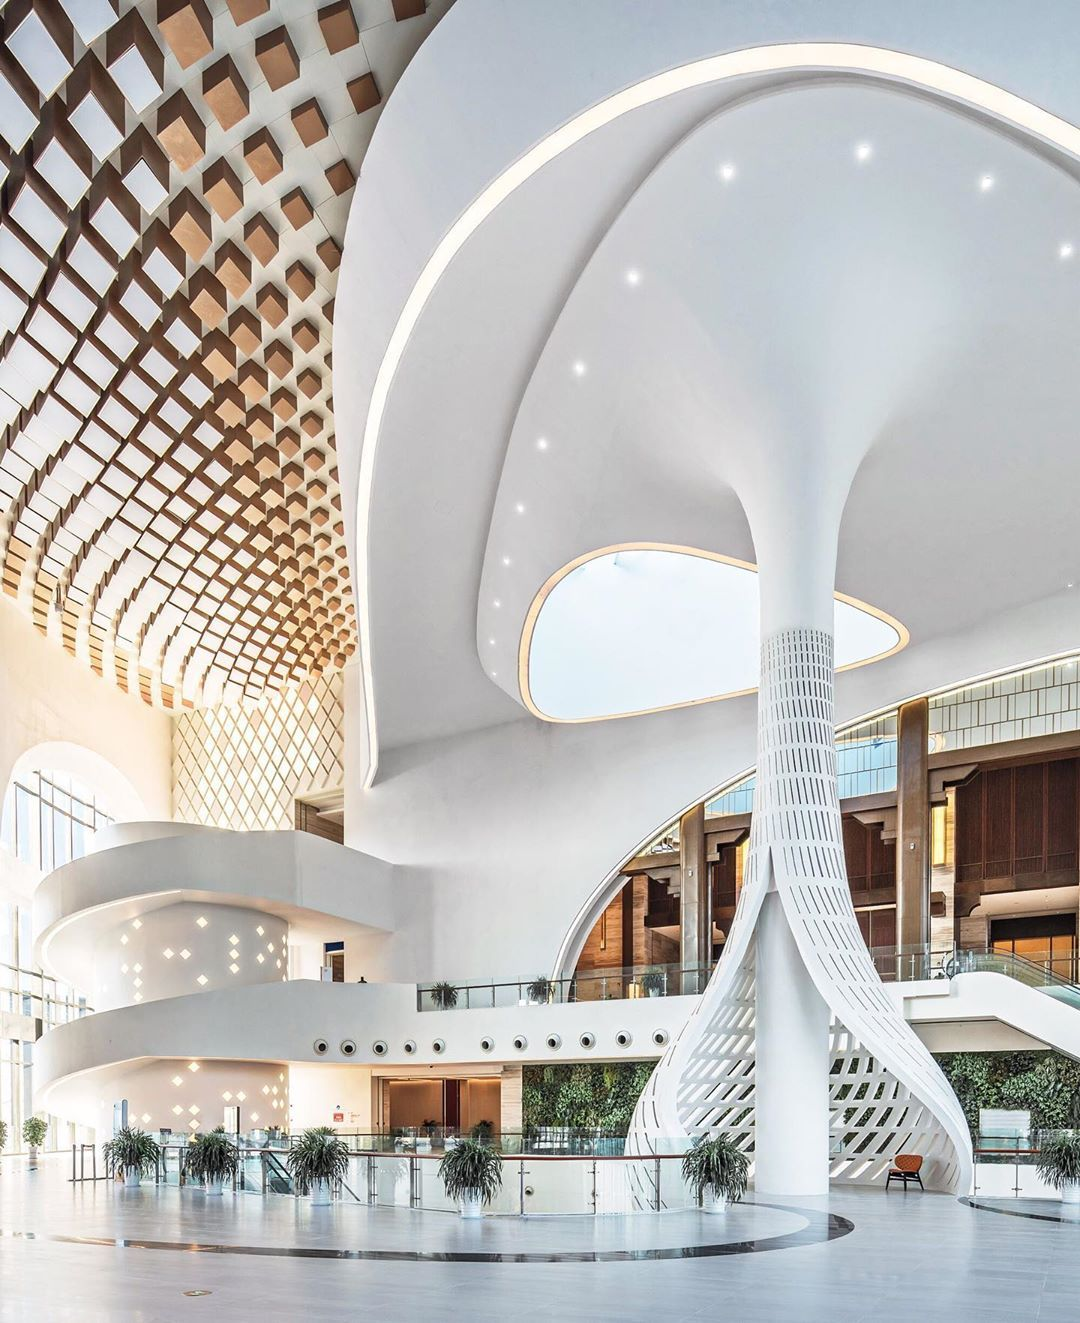 Ith Nearly 20 Conference Halls And The Ability To Accommodate 1 500 People The China Railwa Commercial And Office Architecture Hotel Lobby Design Lobby Design